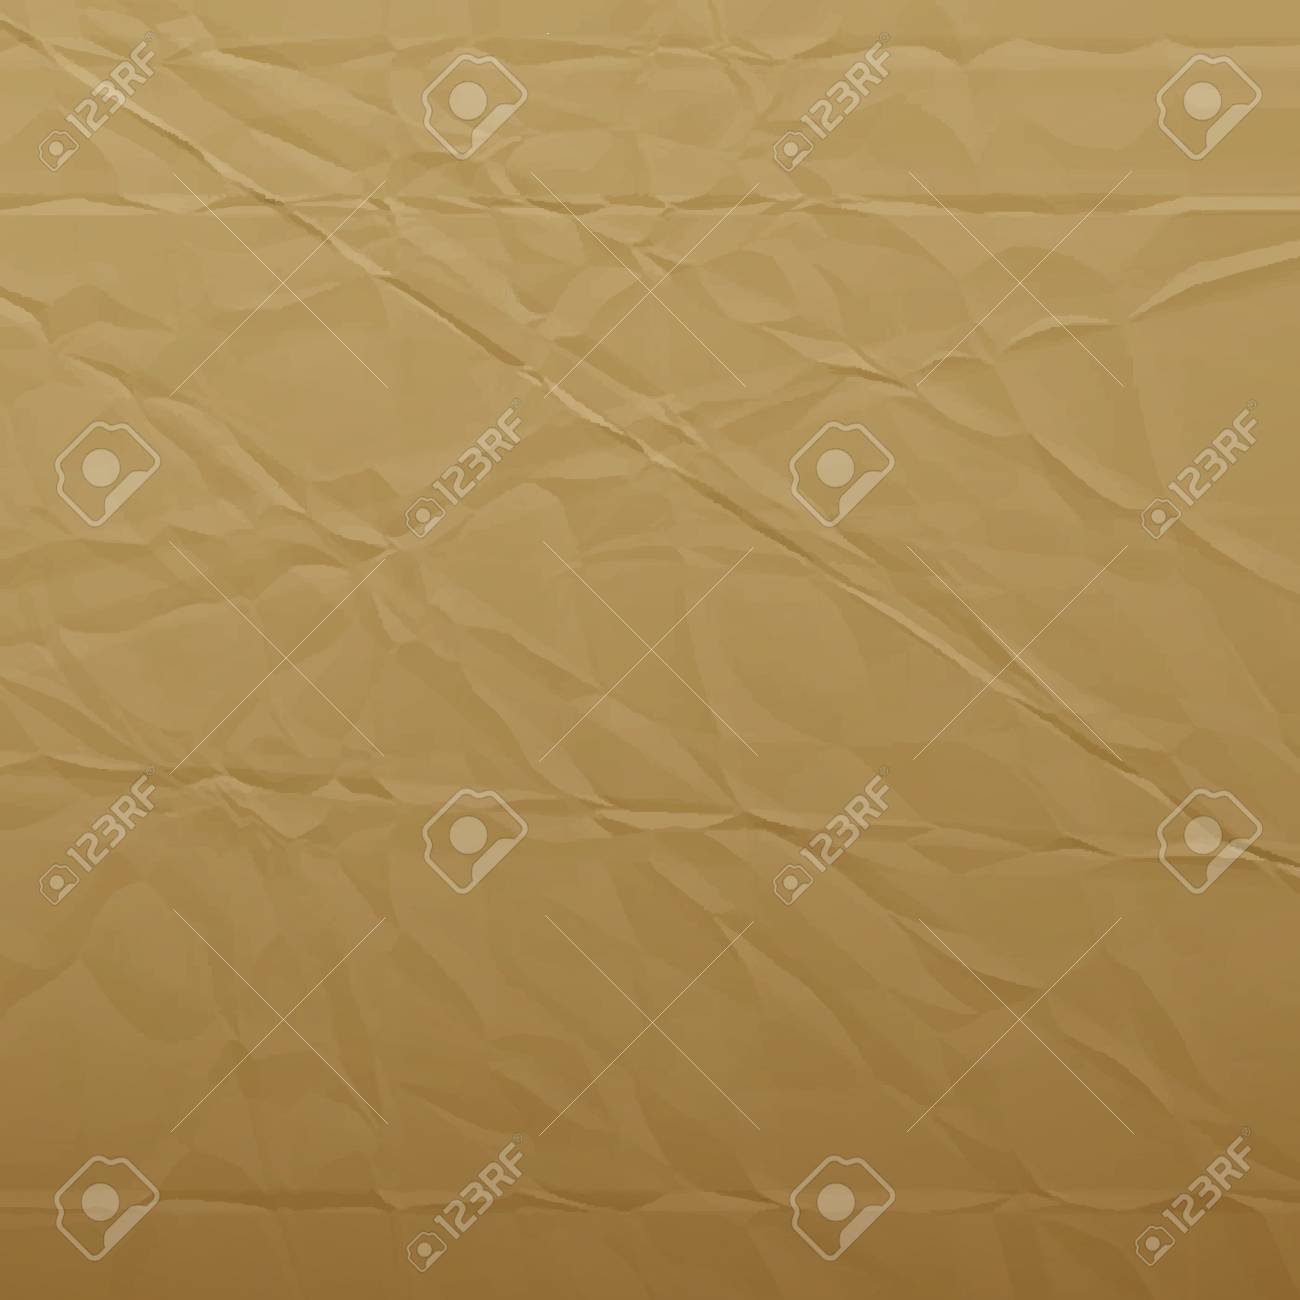 wrinkled paper  vector background  tps10 Stock Photo - 18313163